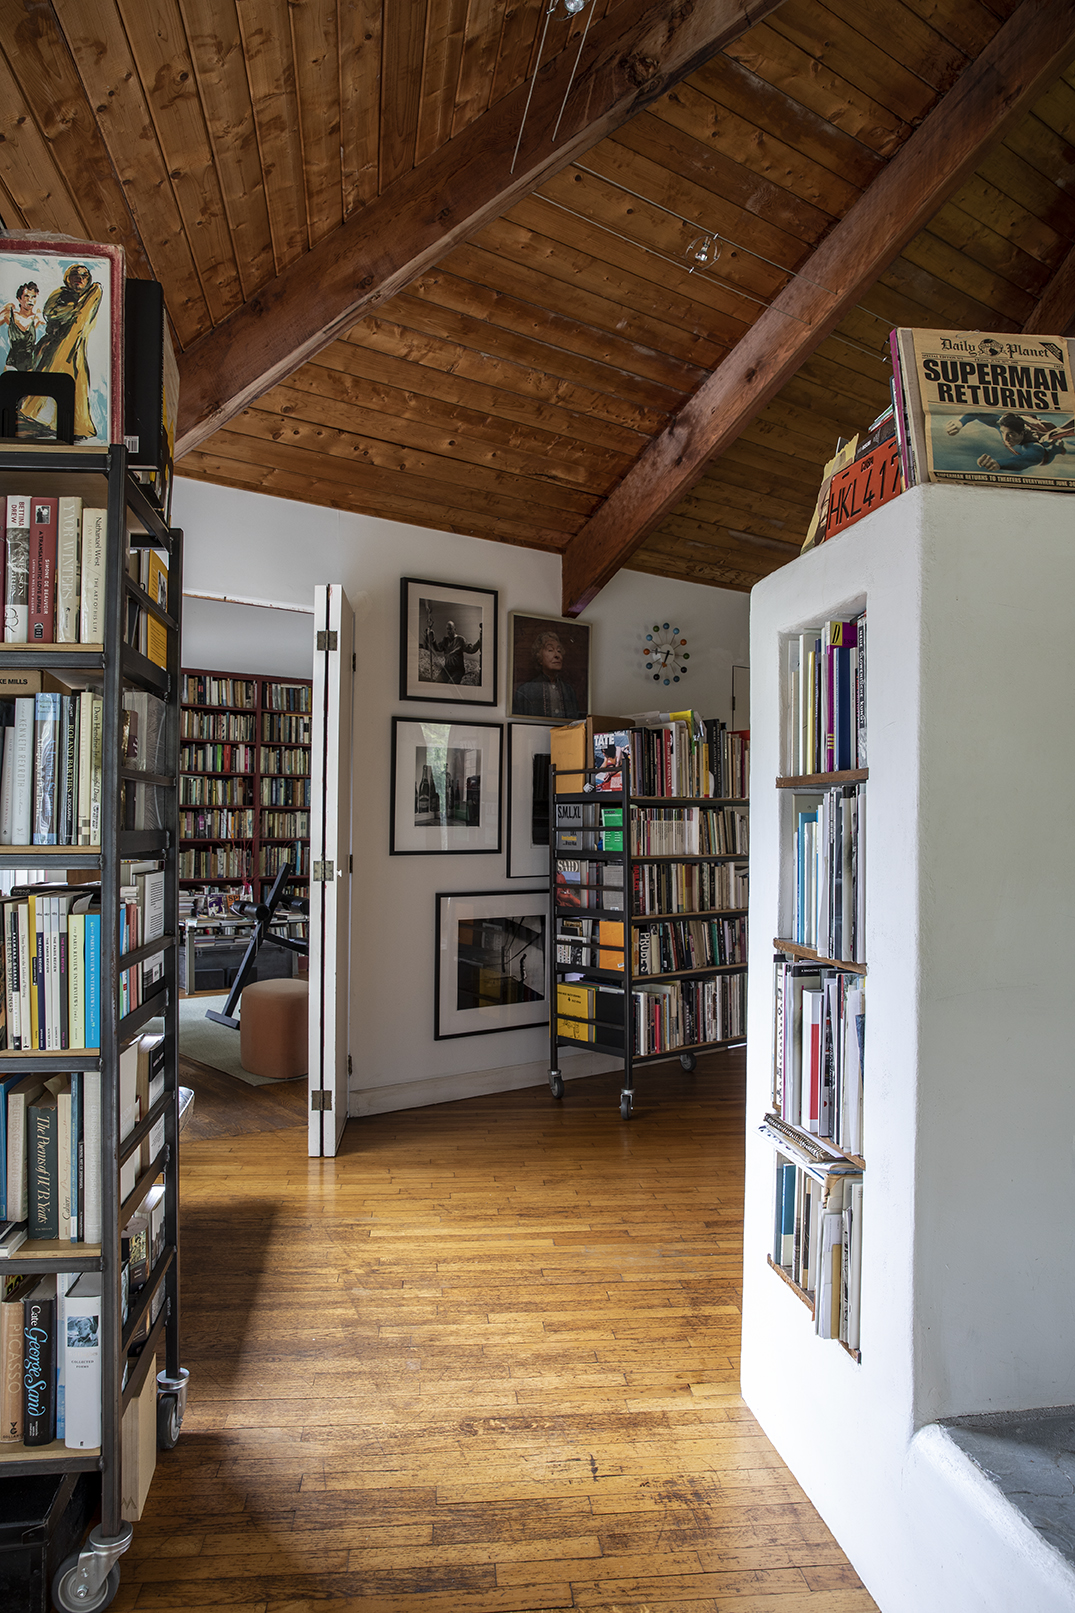 interior of Conover's home, with built-in book shelves and framed art.